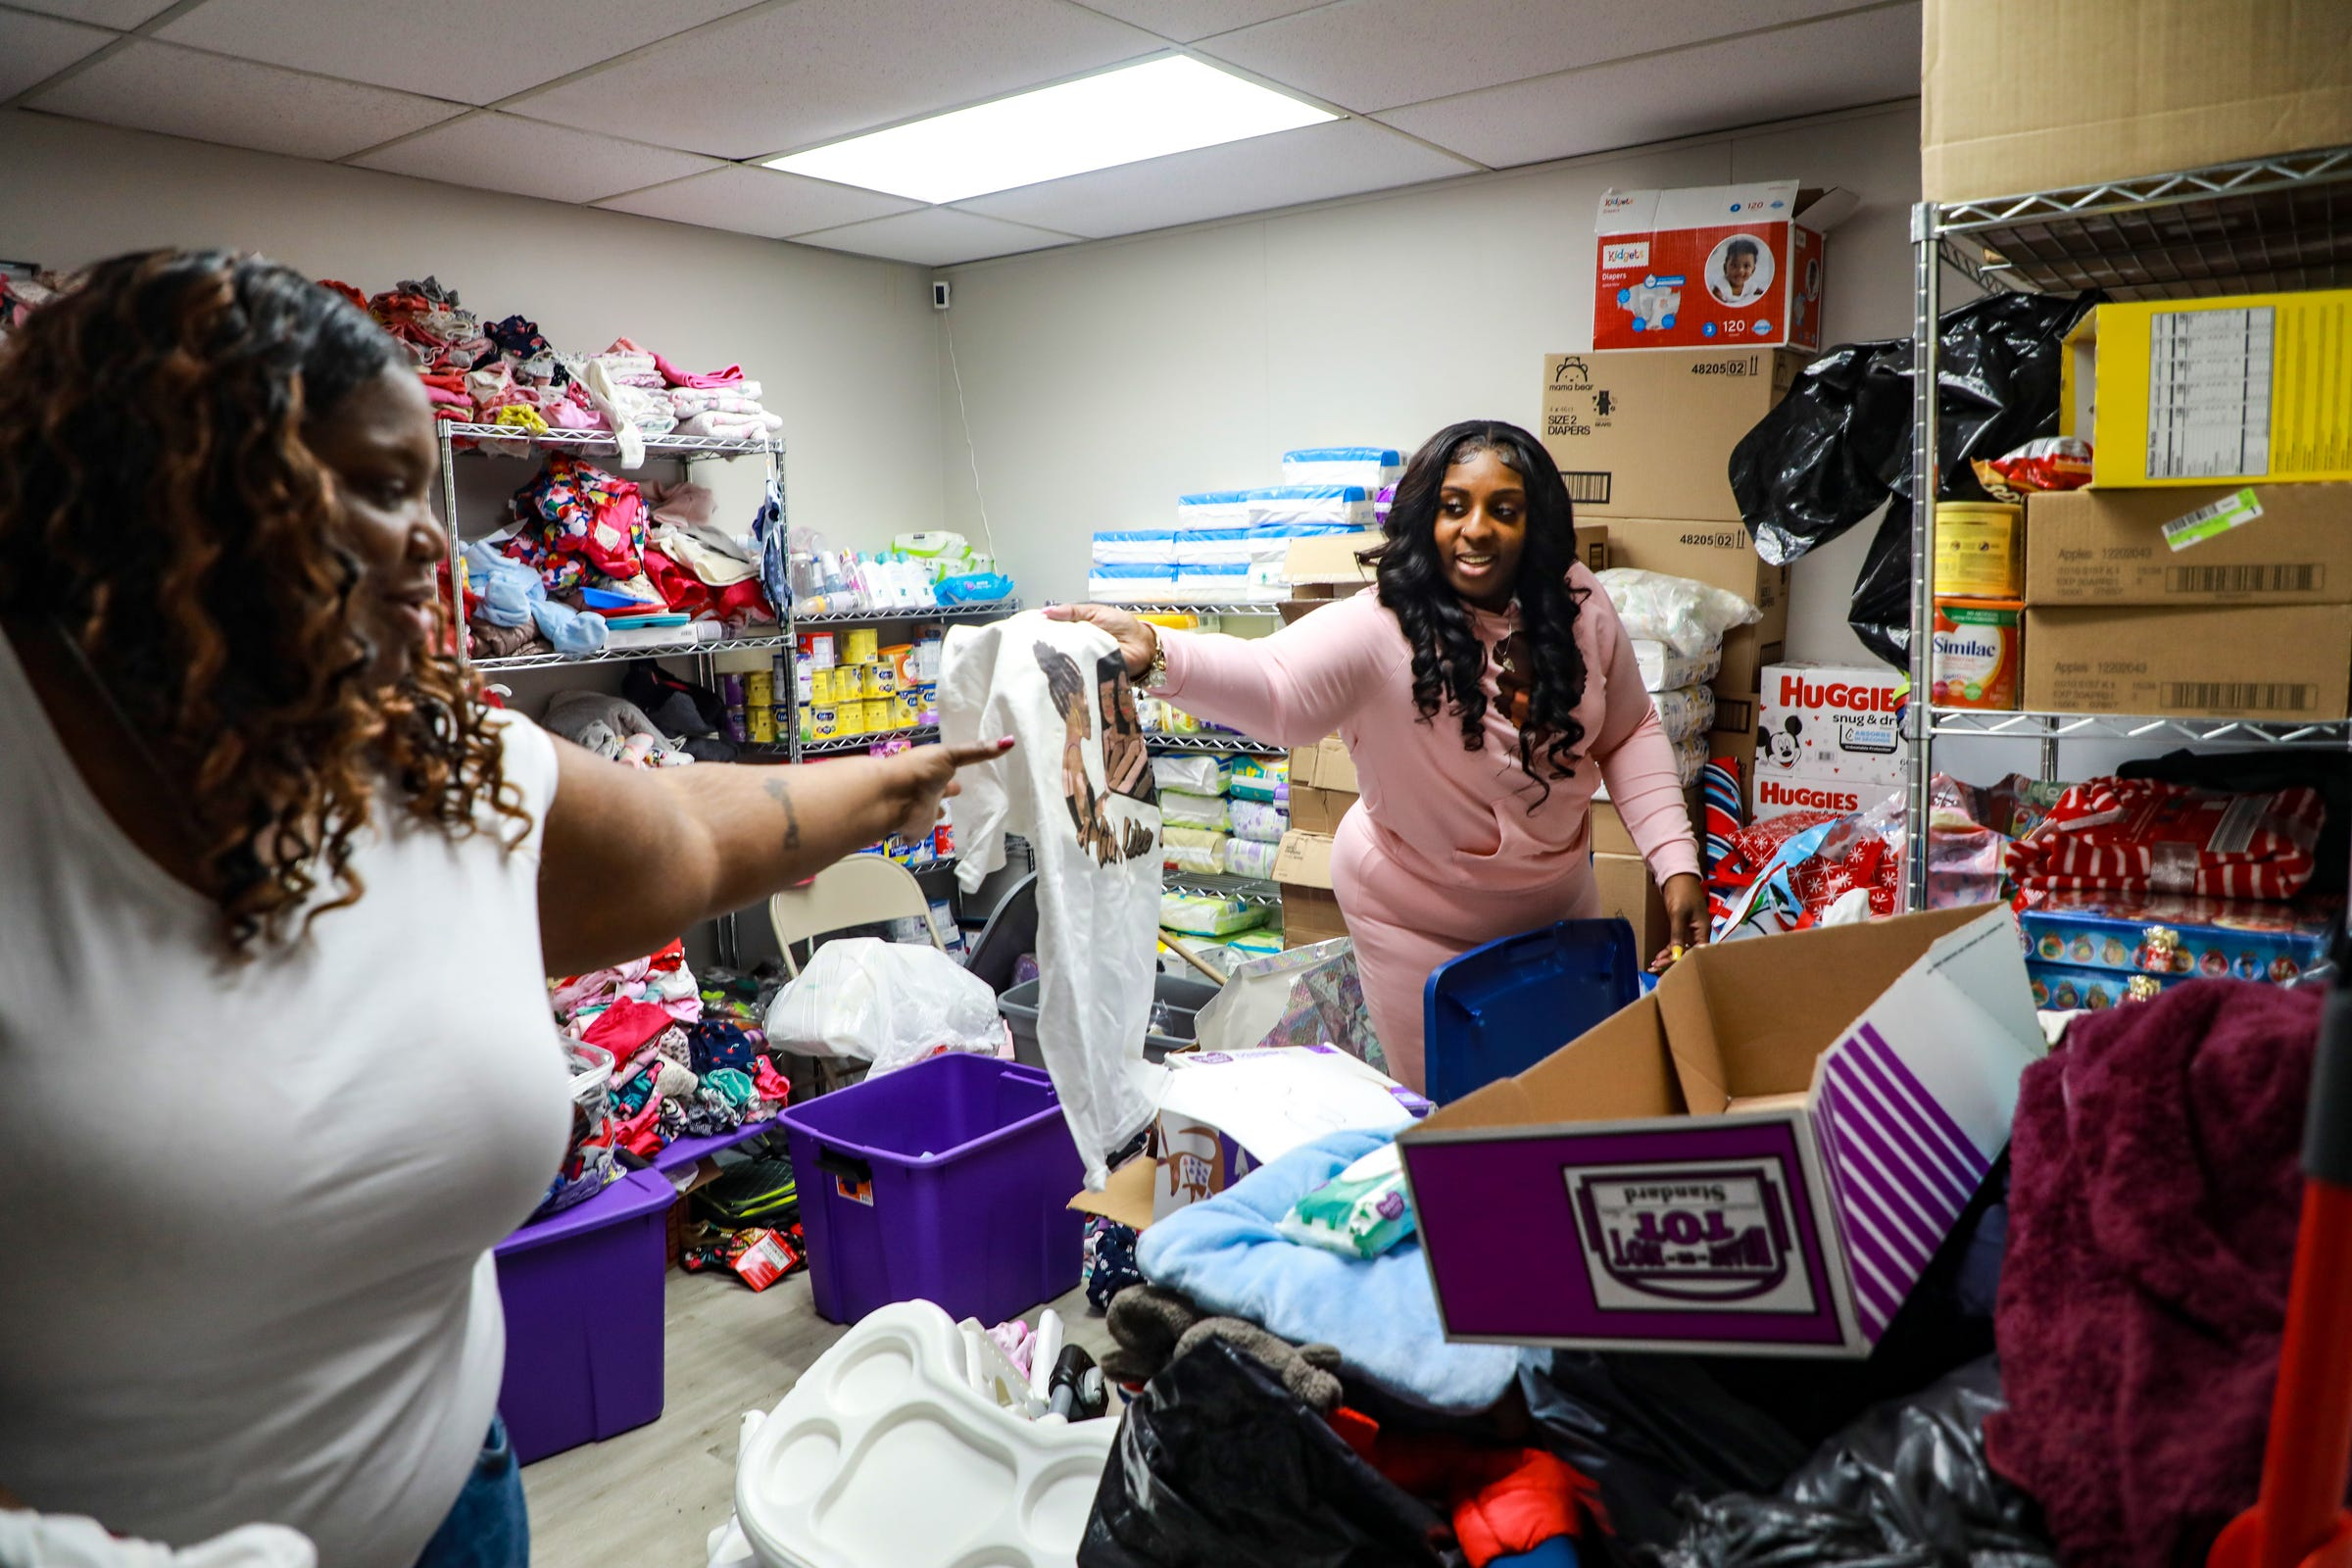 """Tyra Moore, founder of A Girl Like Me, Inc. non-profit, hands t-shirts to Shantell Woods, 32, of Detroit to hand out to the young girls in their mentorship class every Saturday in Southfield on March 13, 2021. Moore says the non-profit serves young girls and helps them navigate growing up with loss, stress and puberty. A Girl Like Me, Inc. also provides resources like food and baby items. """"We're like big sisters to them,"""" says Moore, """"if they don't have anyone to talk to, they can always talk to us about anything that may be going on in their life."""""""